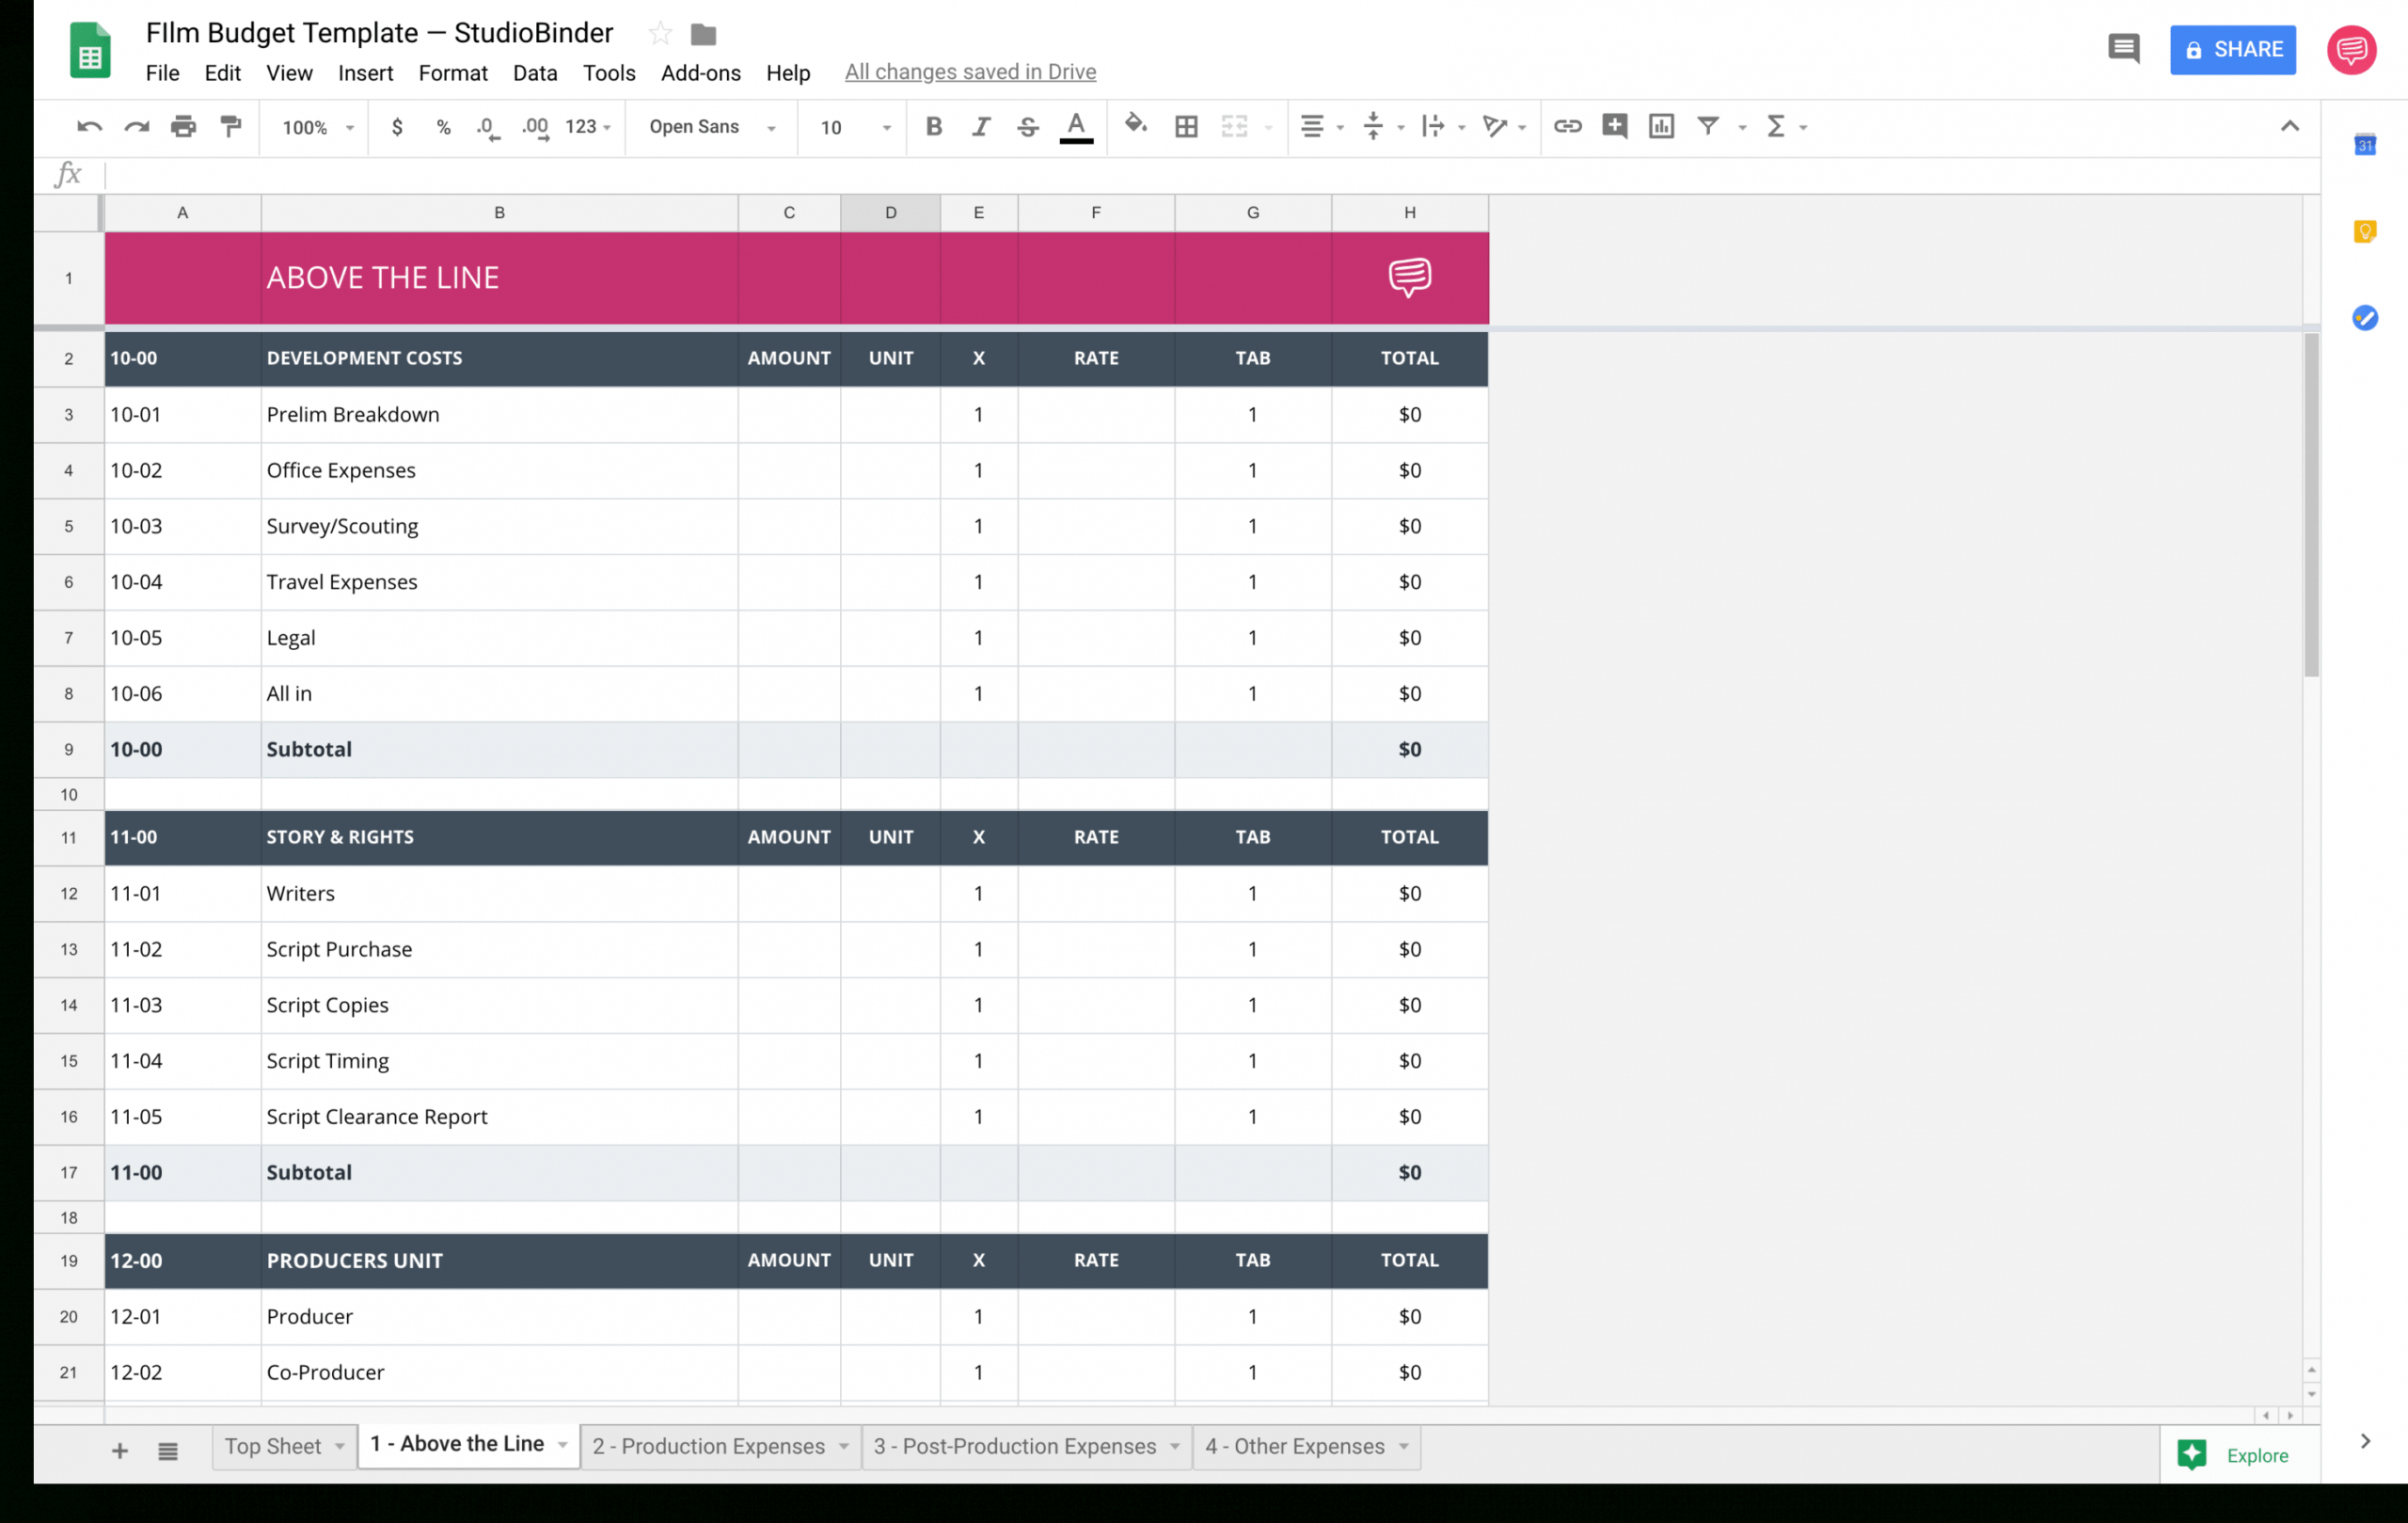 sample download your free film budget template for film & video independent film budget template